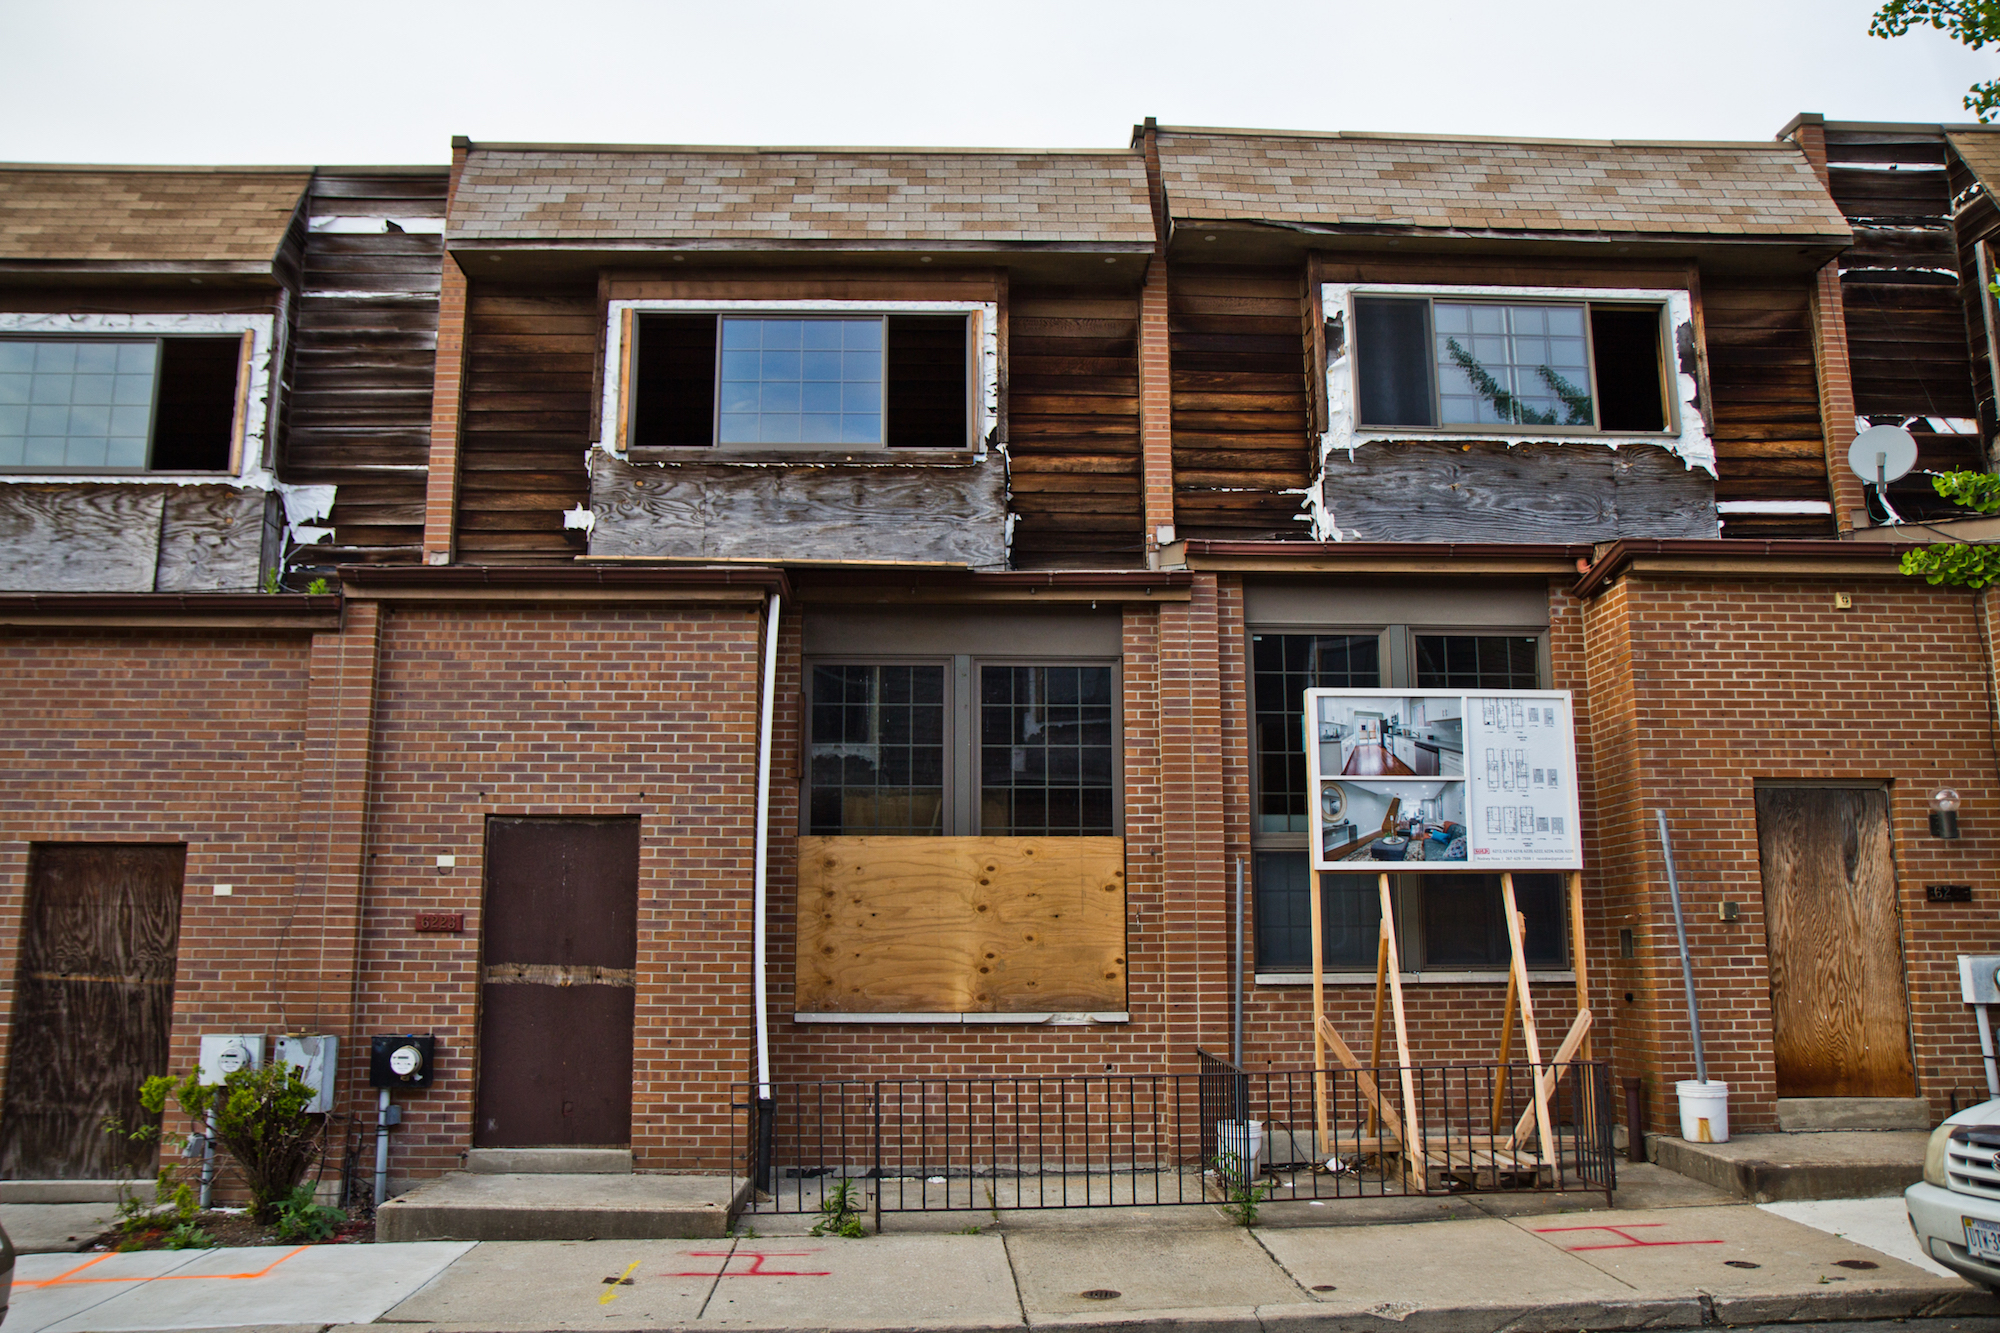 After rehab, homes destroyed by MOVE bombing find buyers - WHYY